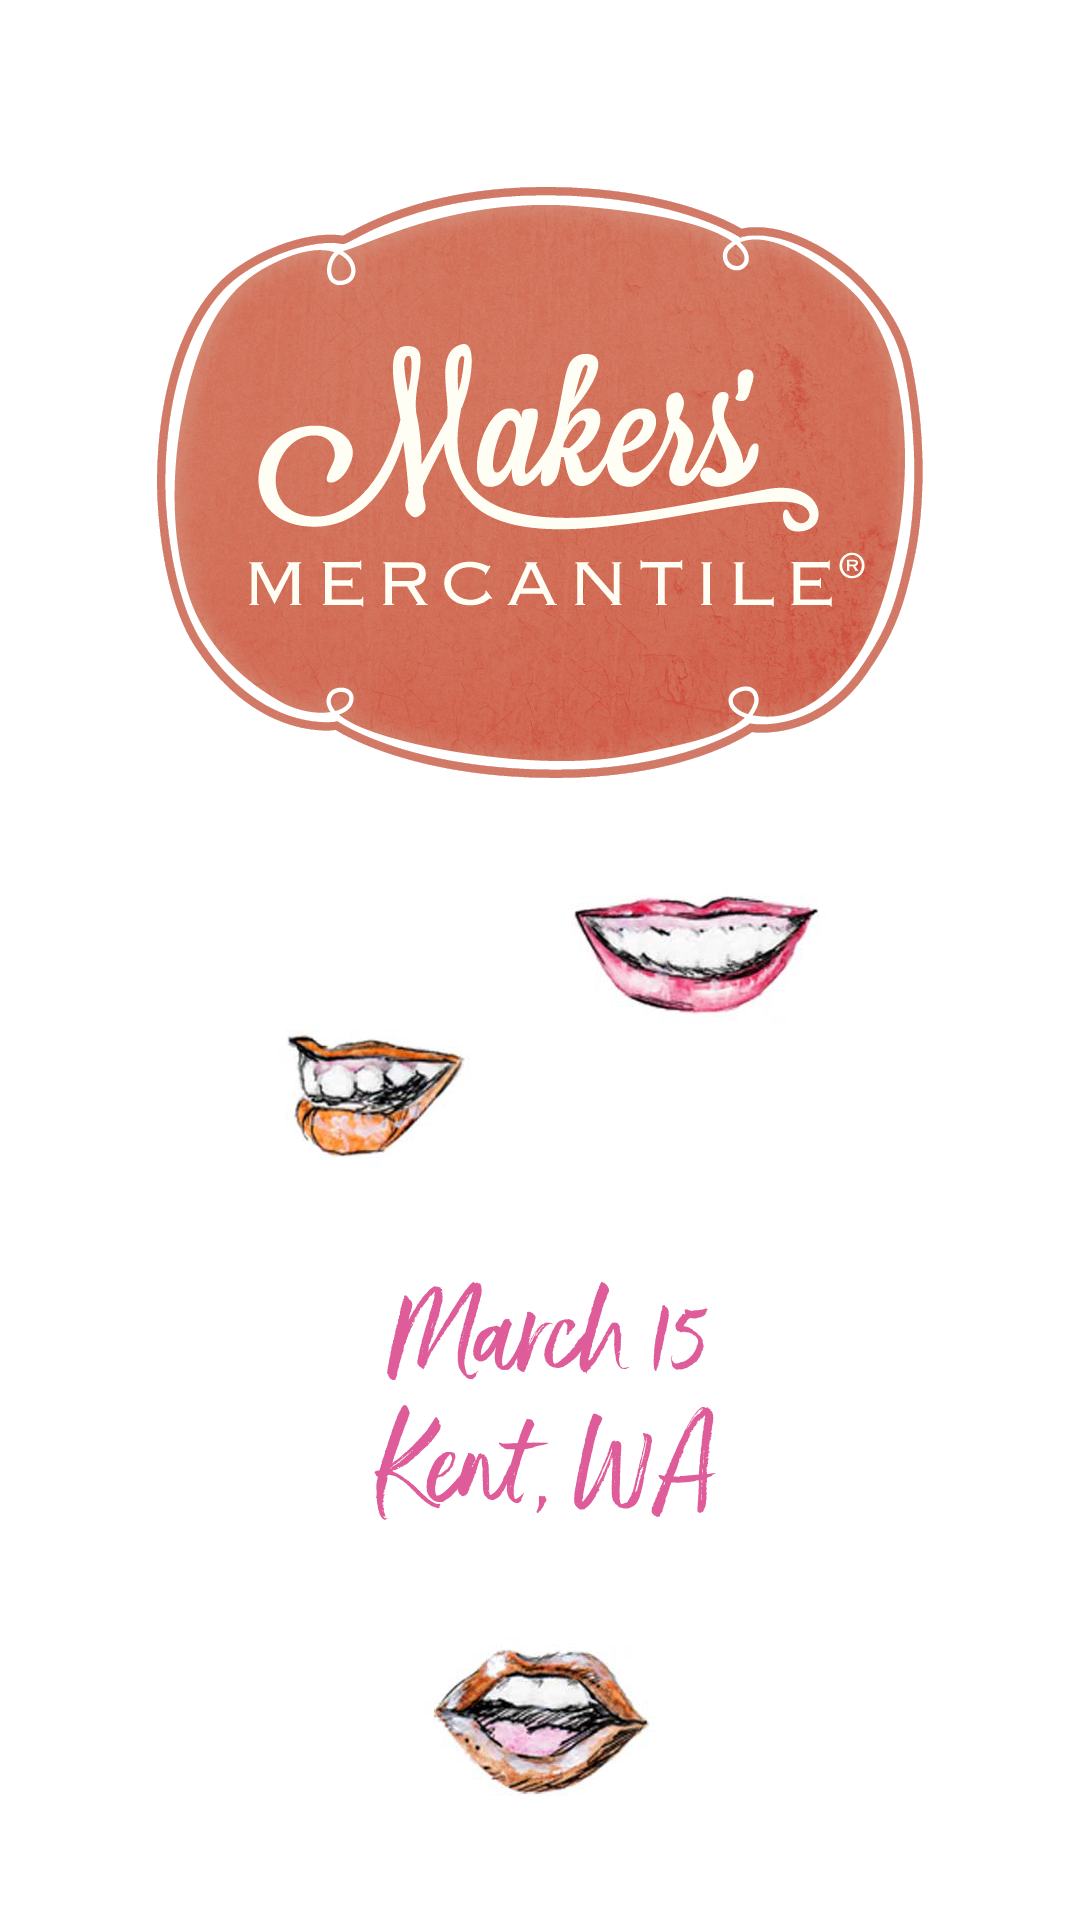 Krista Suh at Maker's Mercantile